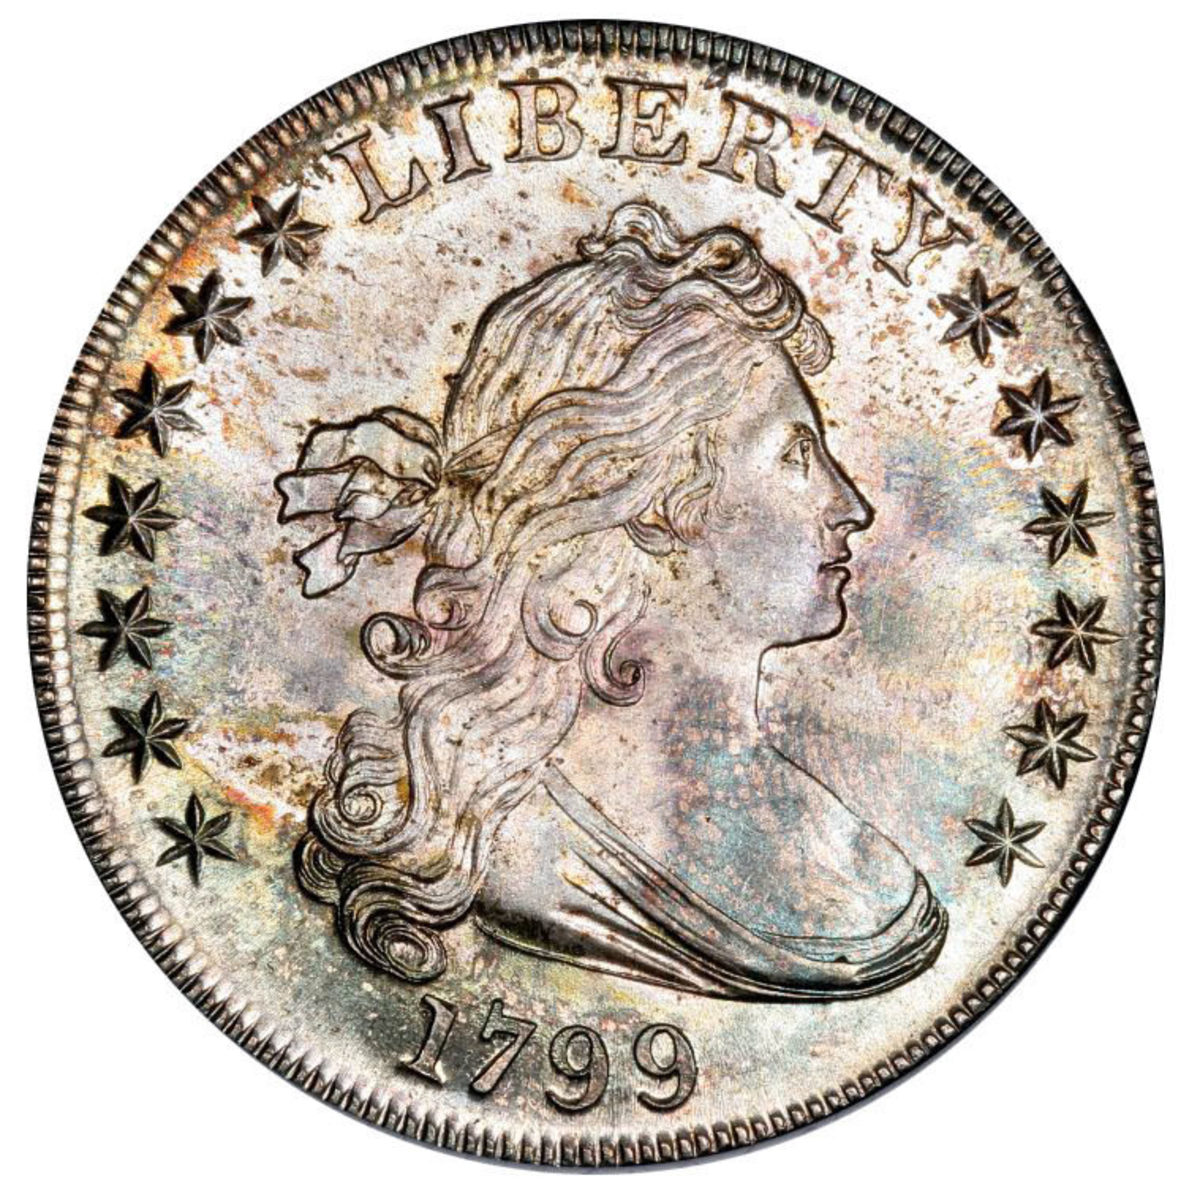 A 1799 Draped Bust dollar, graded MS-66, will also cross the block.